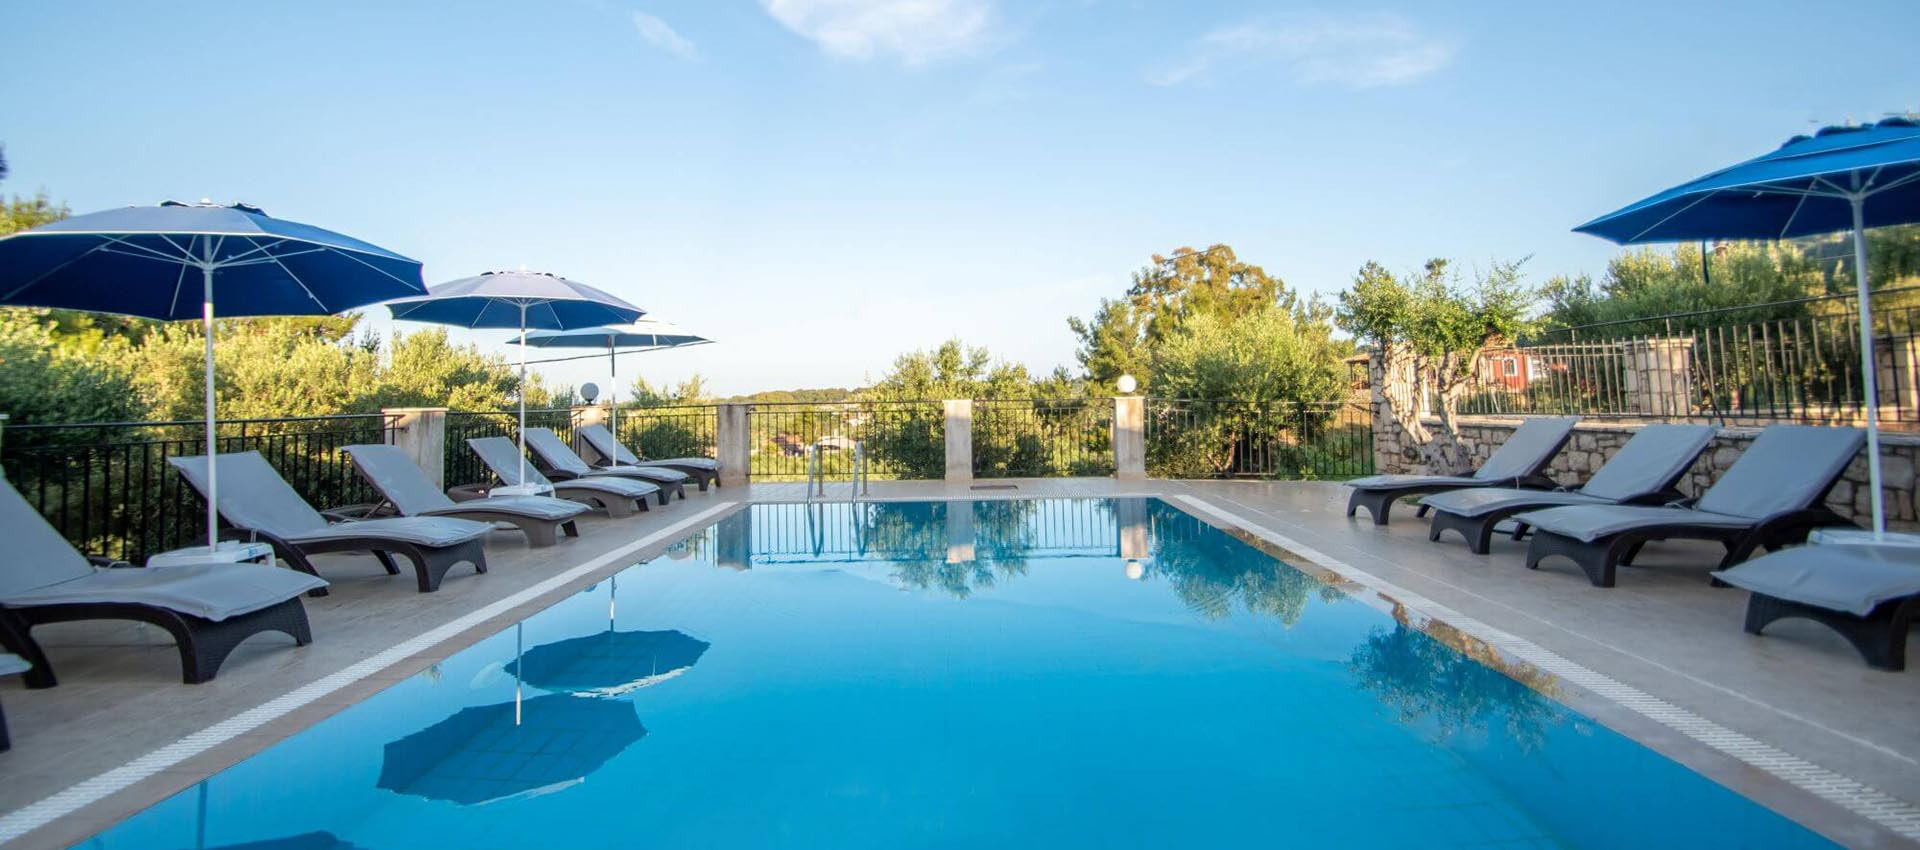 Aeolos Villas-Apartments Vassilikos